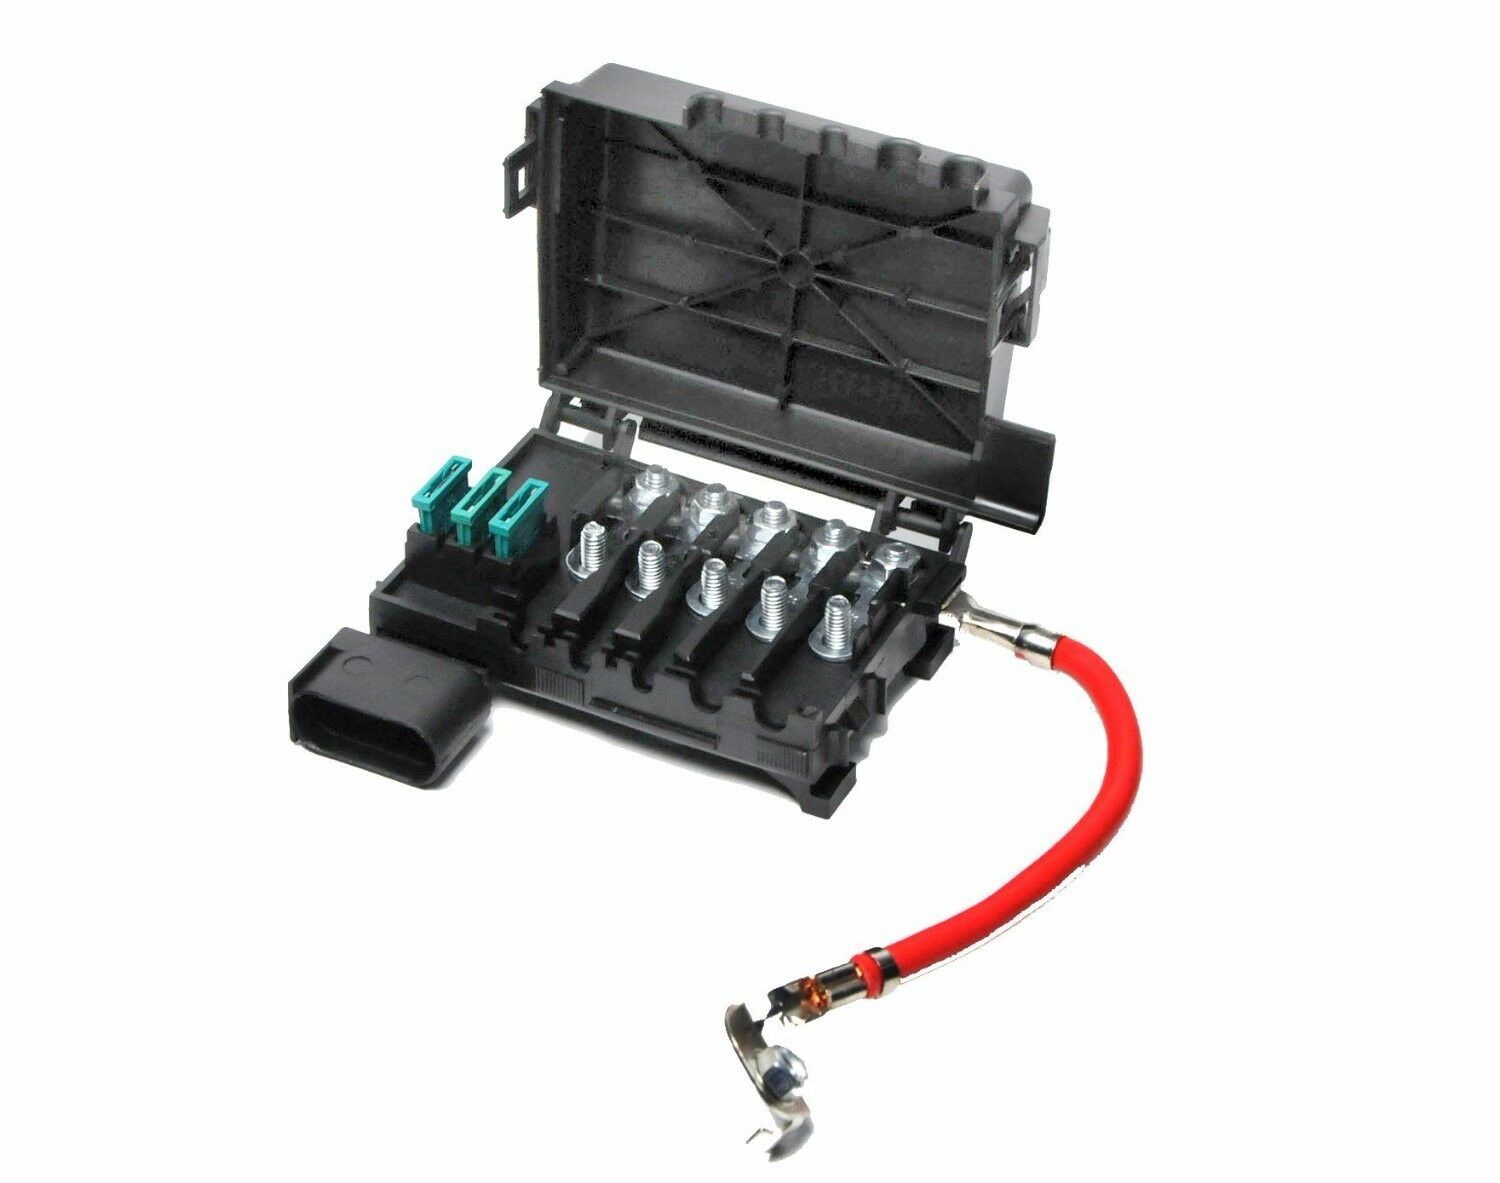 Fuse Box Battery Terminal Fit For VW Jetta Golf MK4 Beetle 2.0 1.9TDI